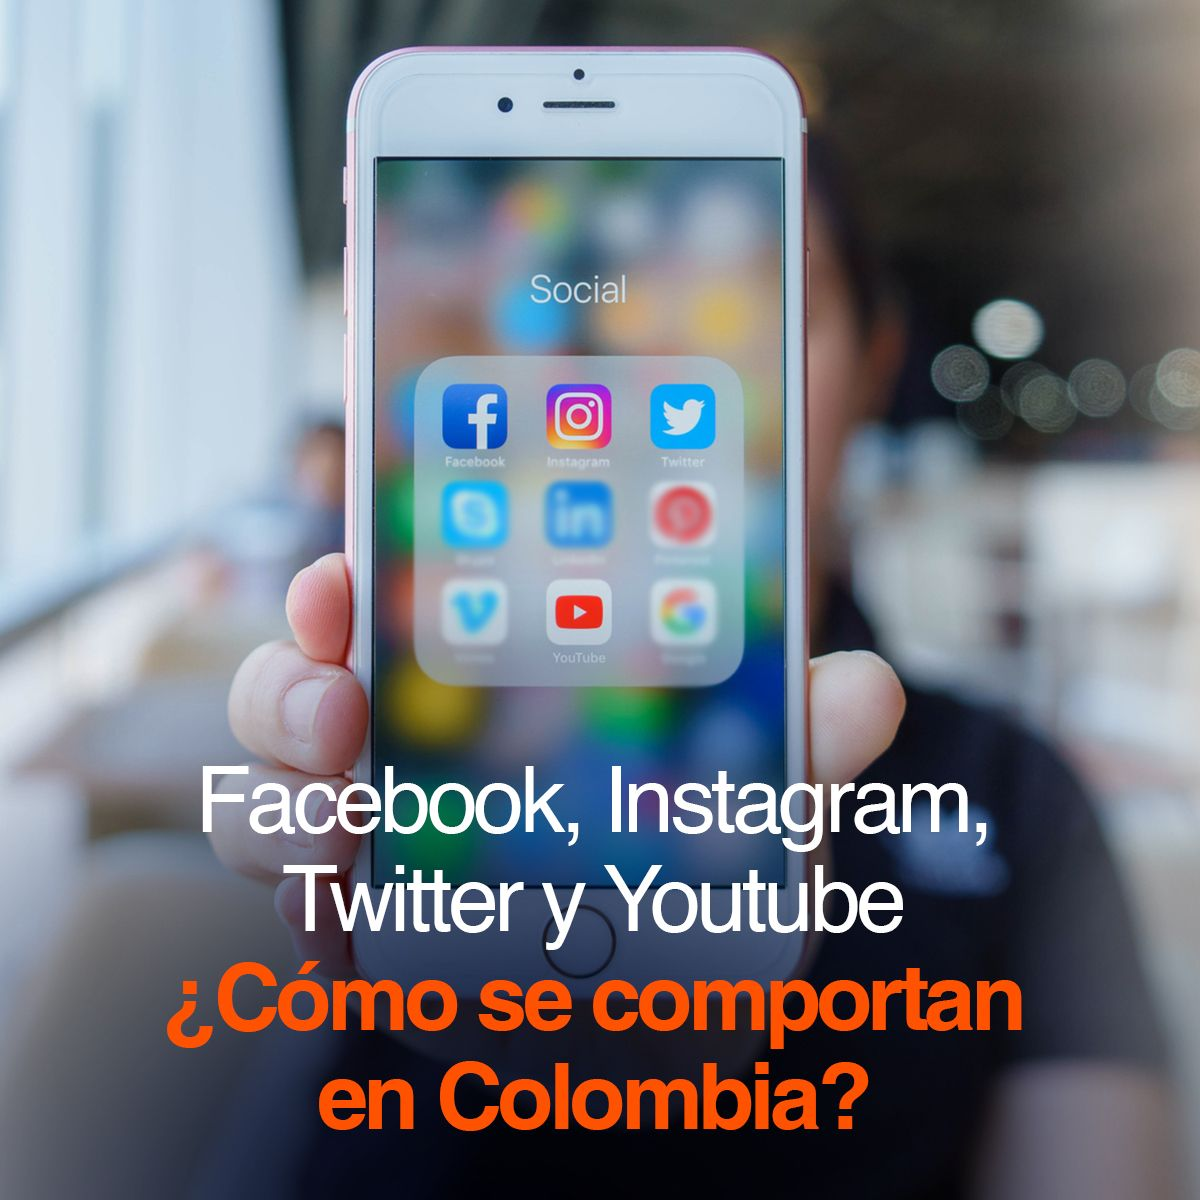 Facebook, Instagram, Twitter y Youtube ¿Cómo se comportan en Colombia?